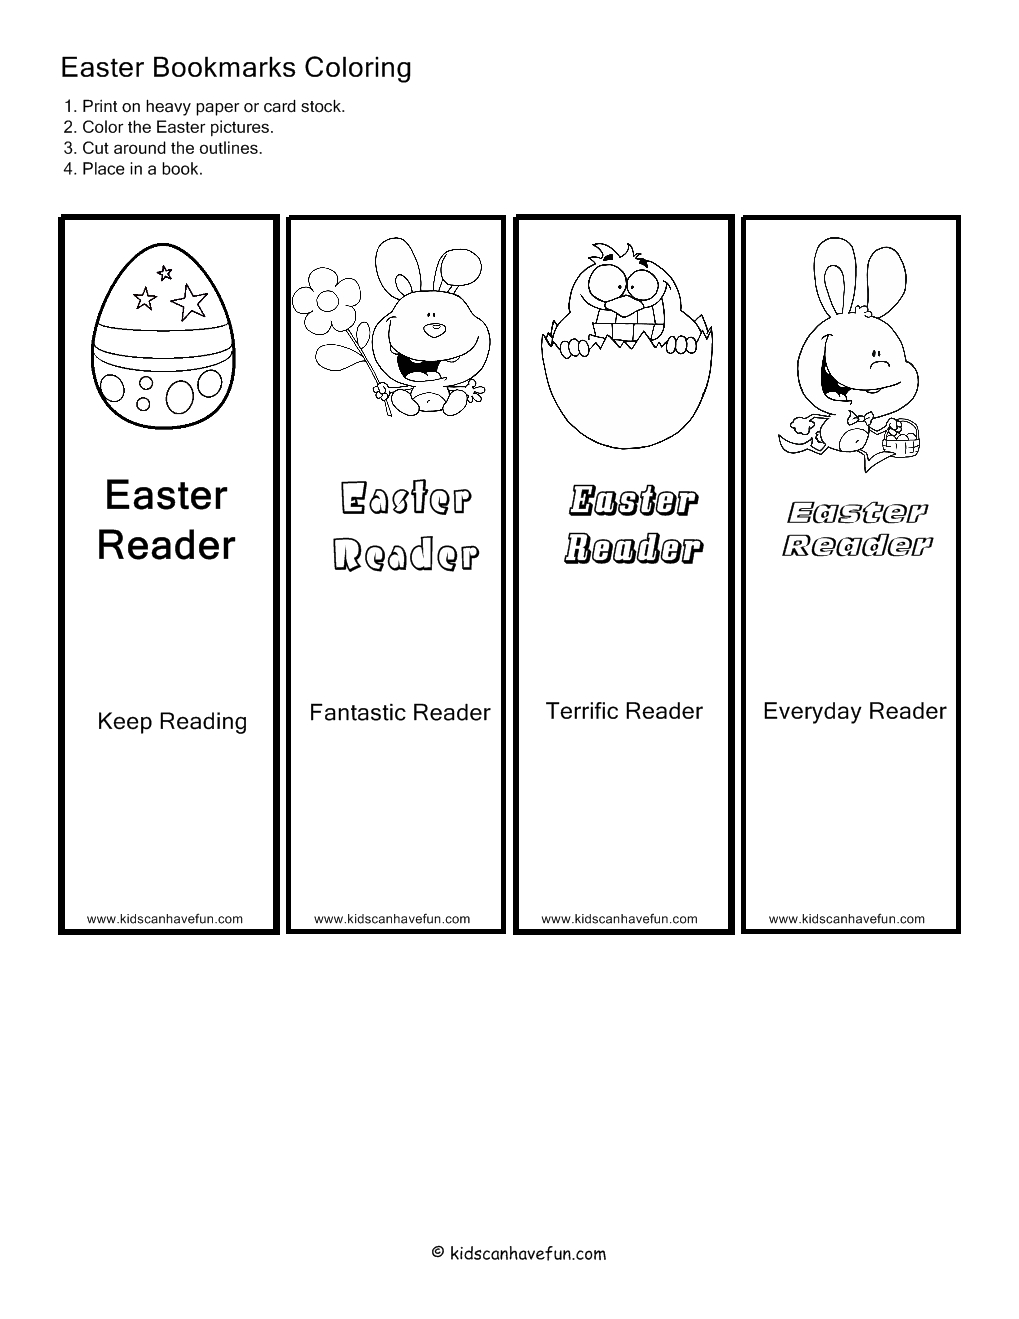 Printable Easter Bookmarks – Happy Easter & Thanksgiving 2018 - Free Printable Religious Easter Bookmarks